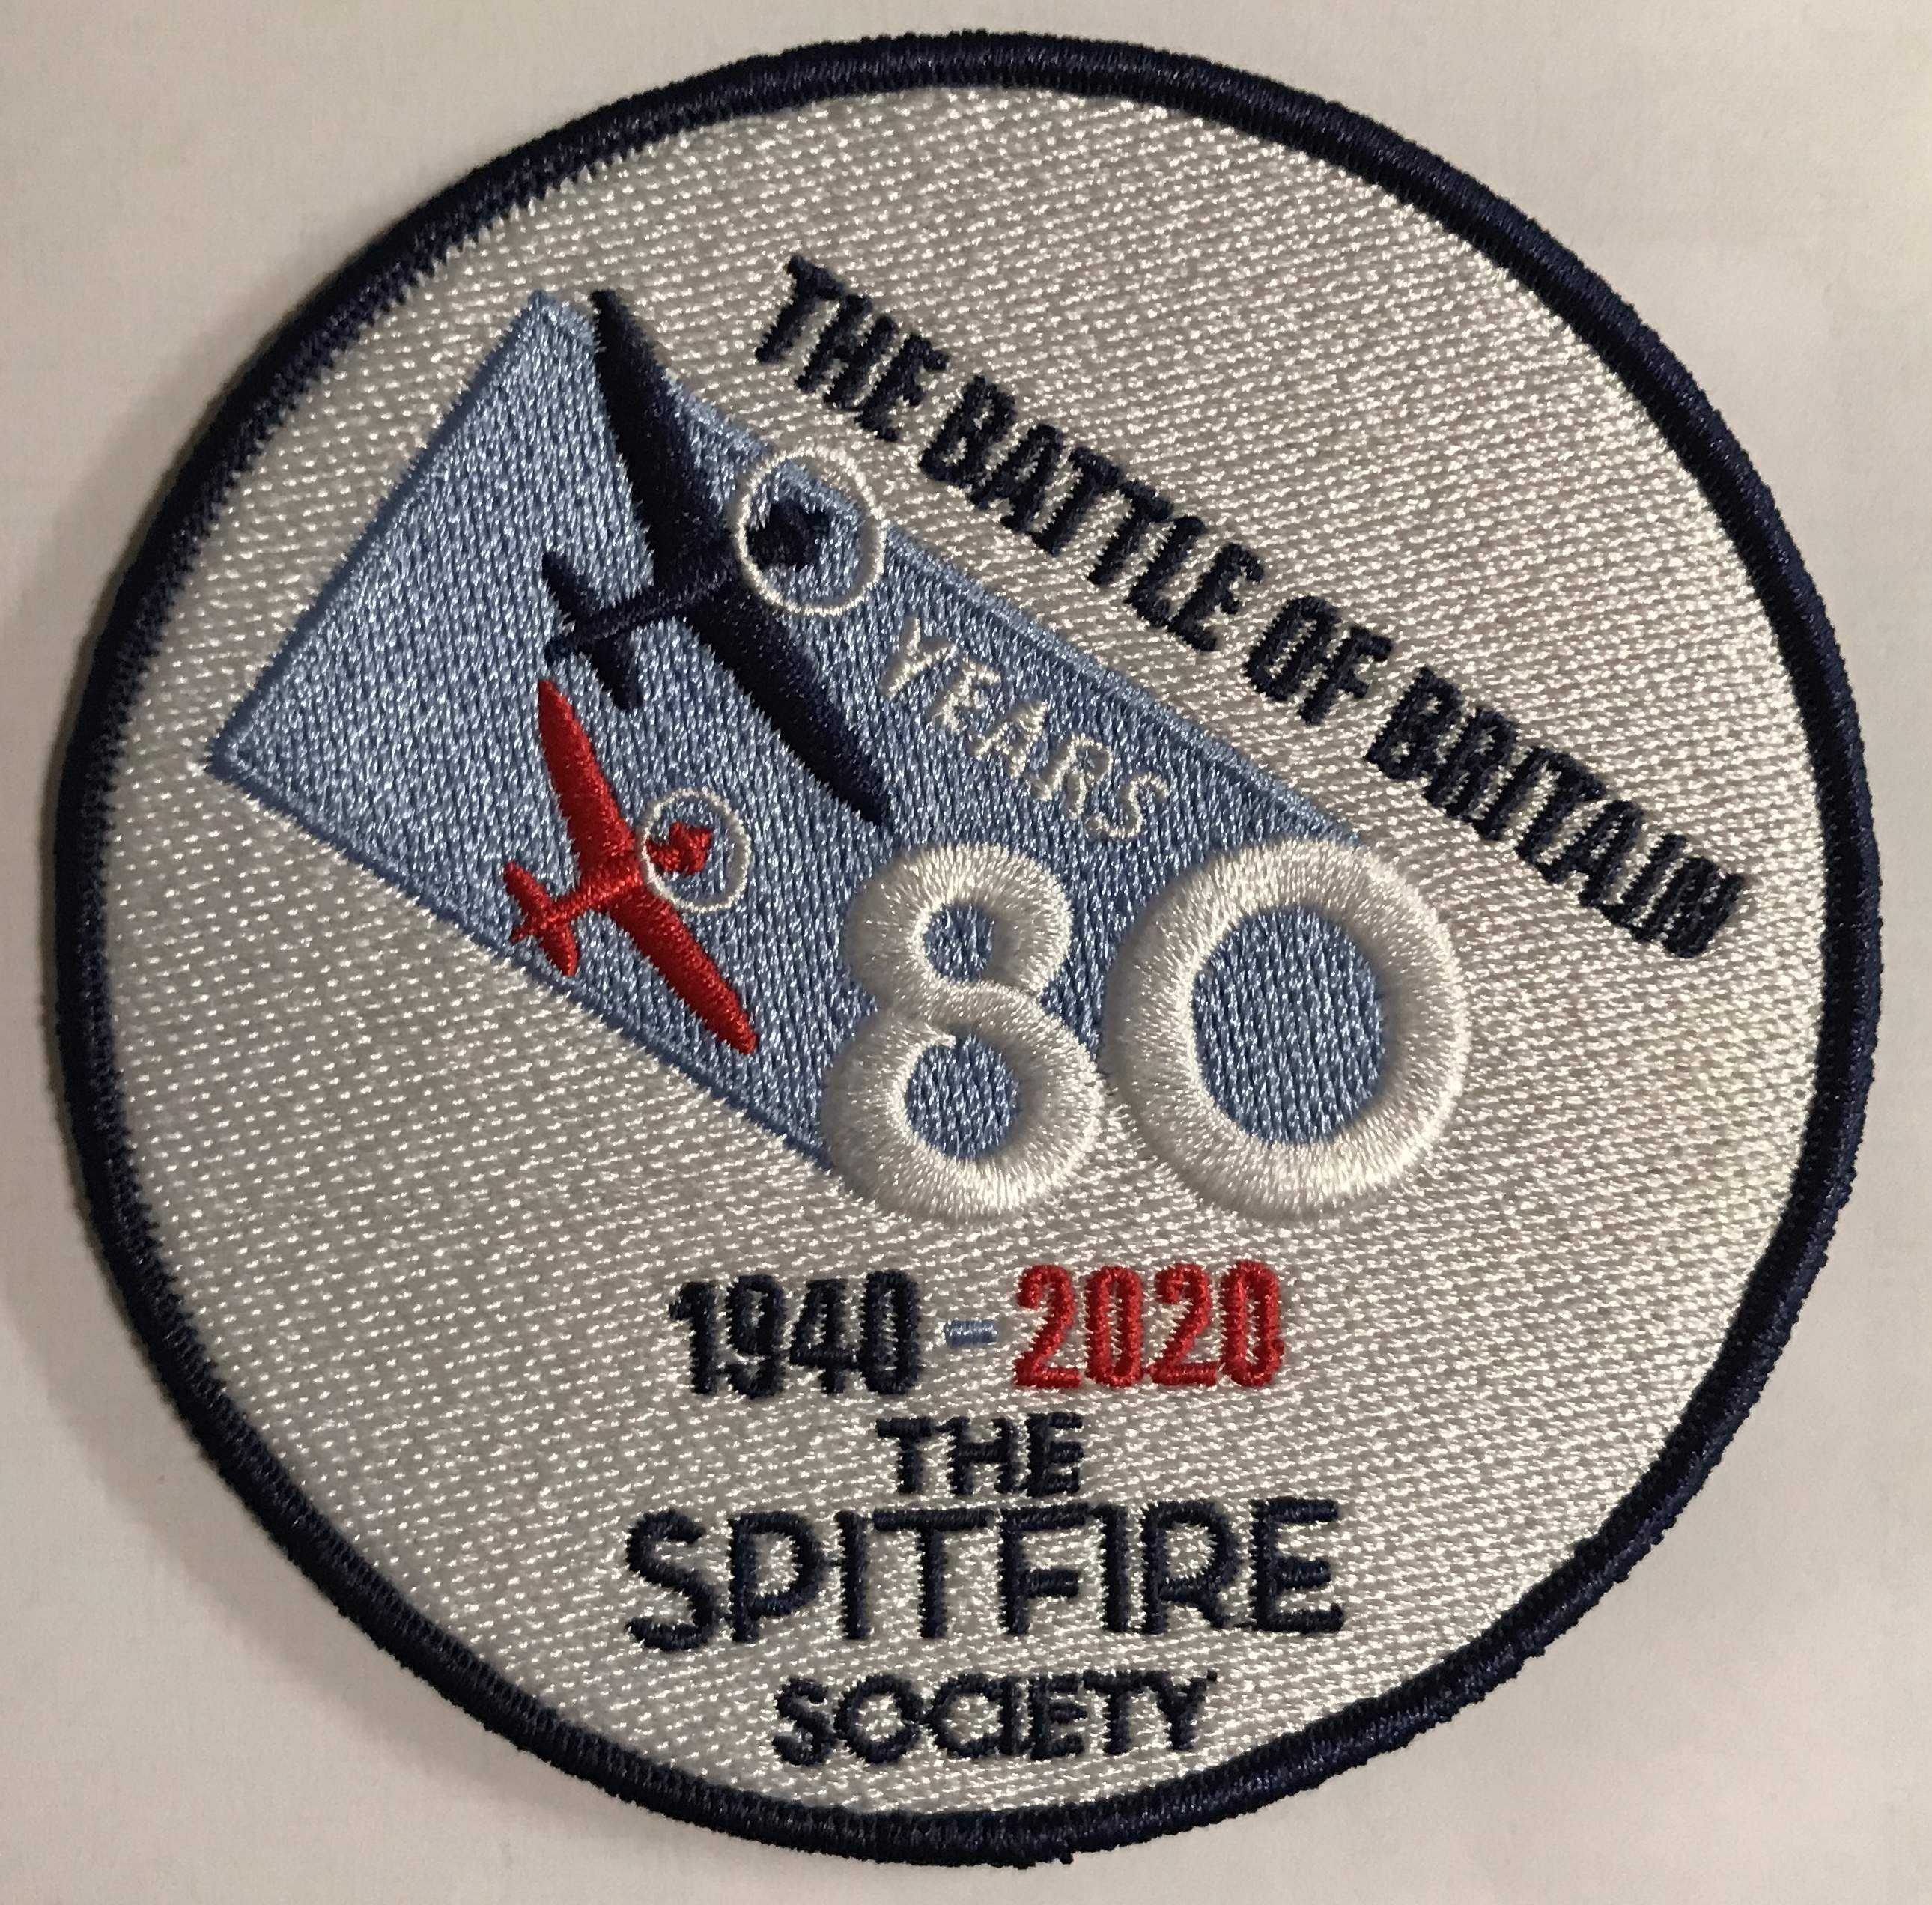 The Battle of Britain 80th Anniversary fabric badge patch